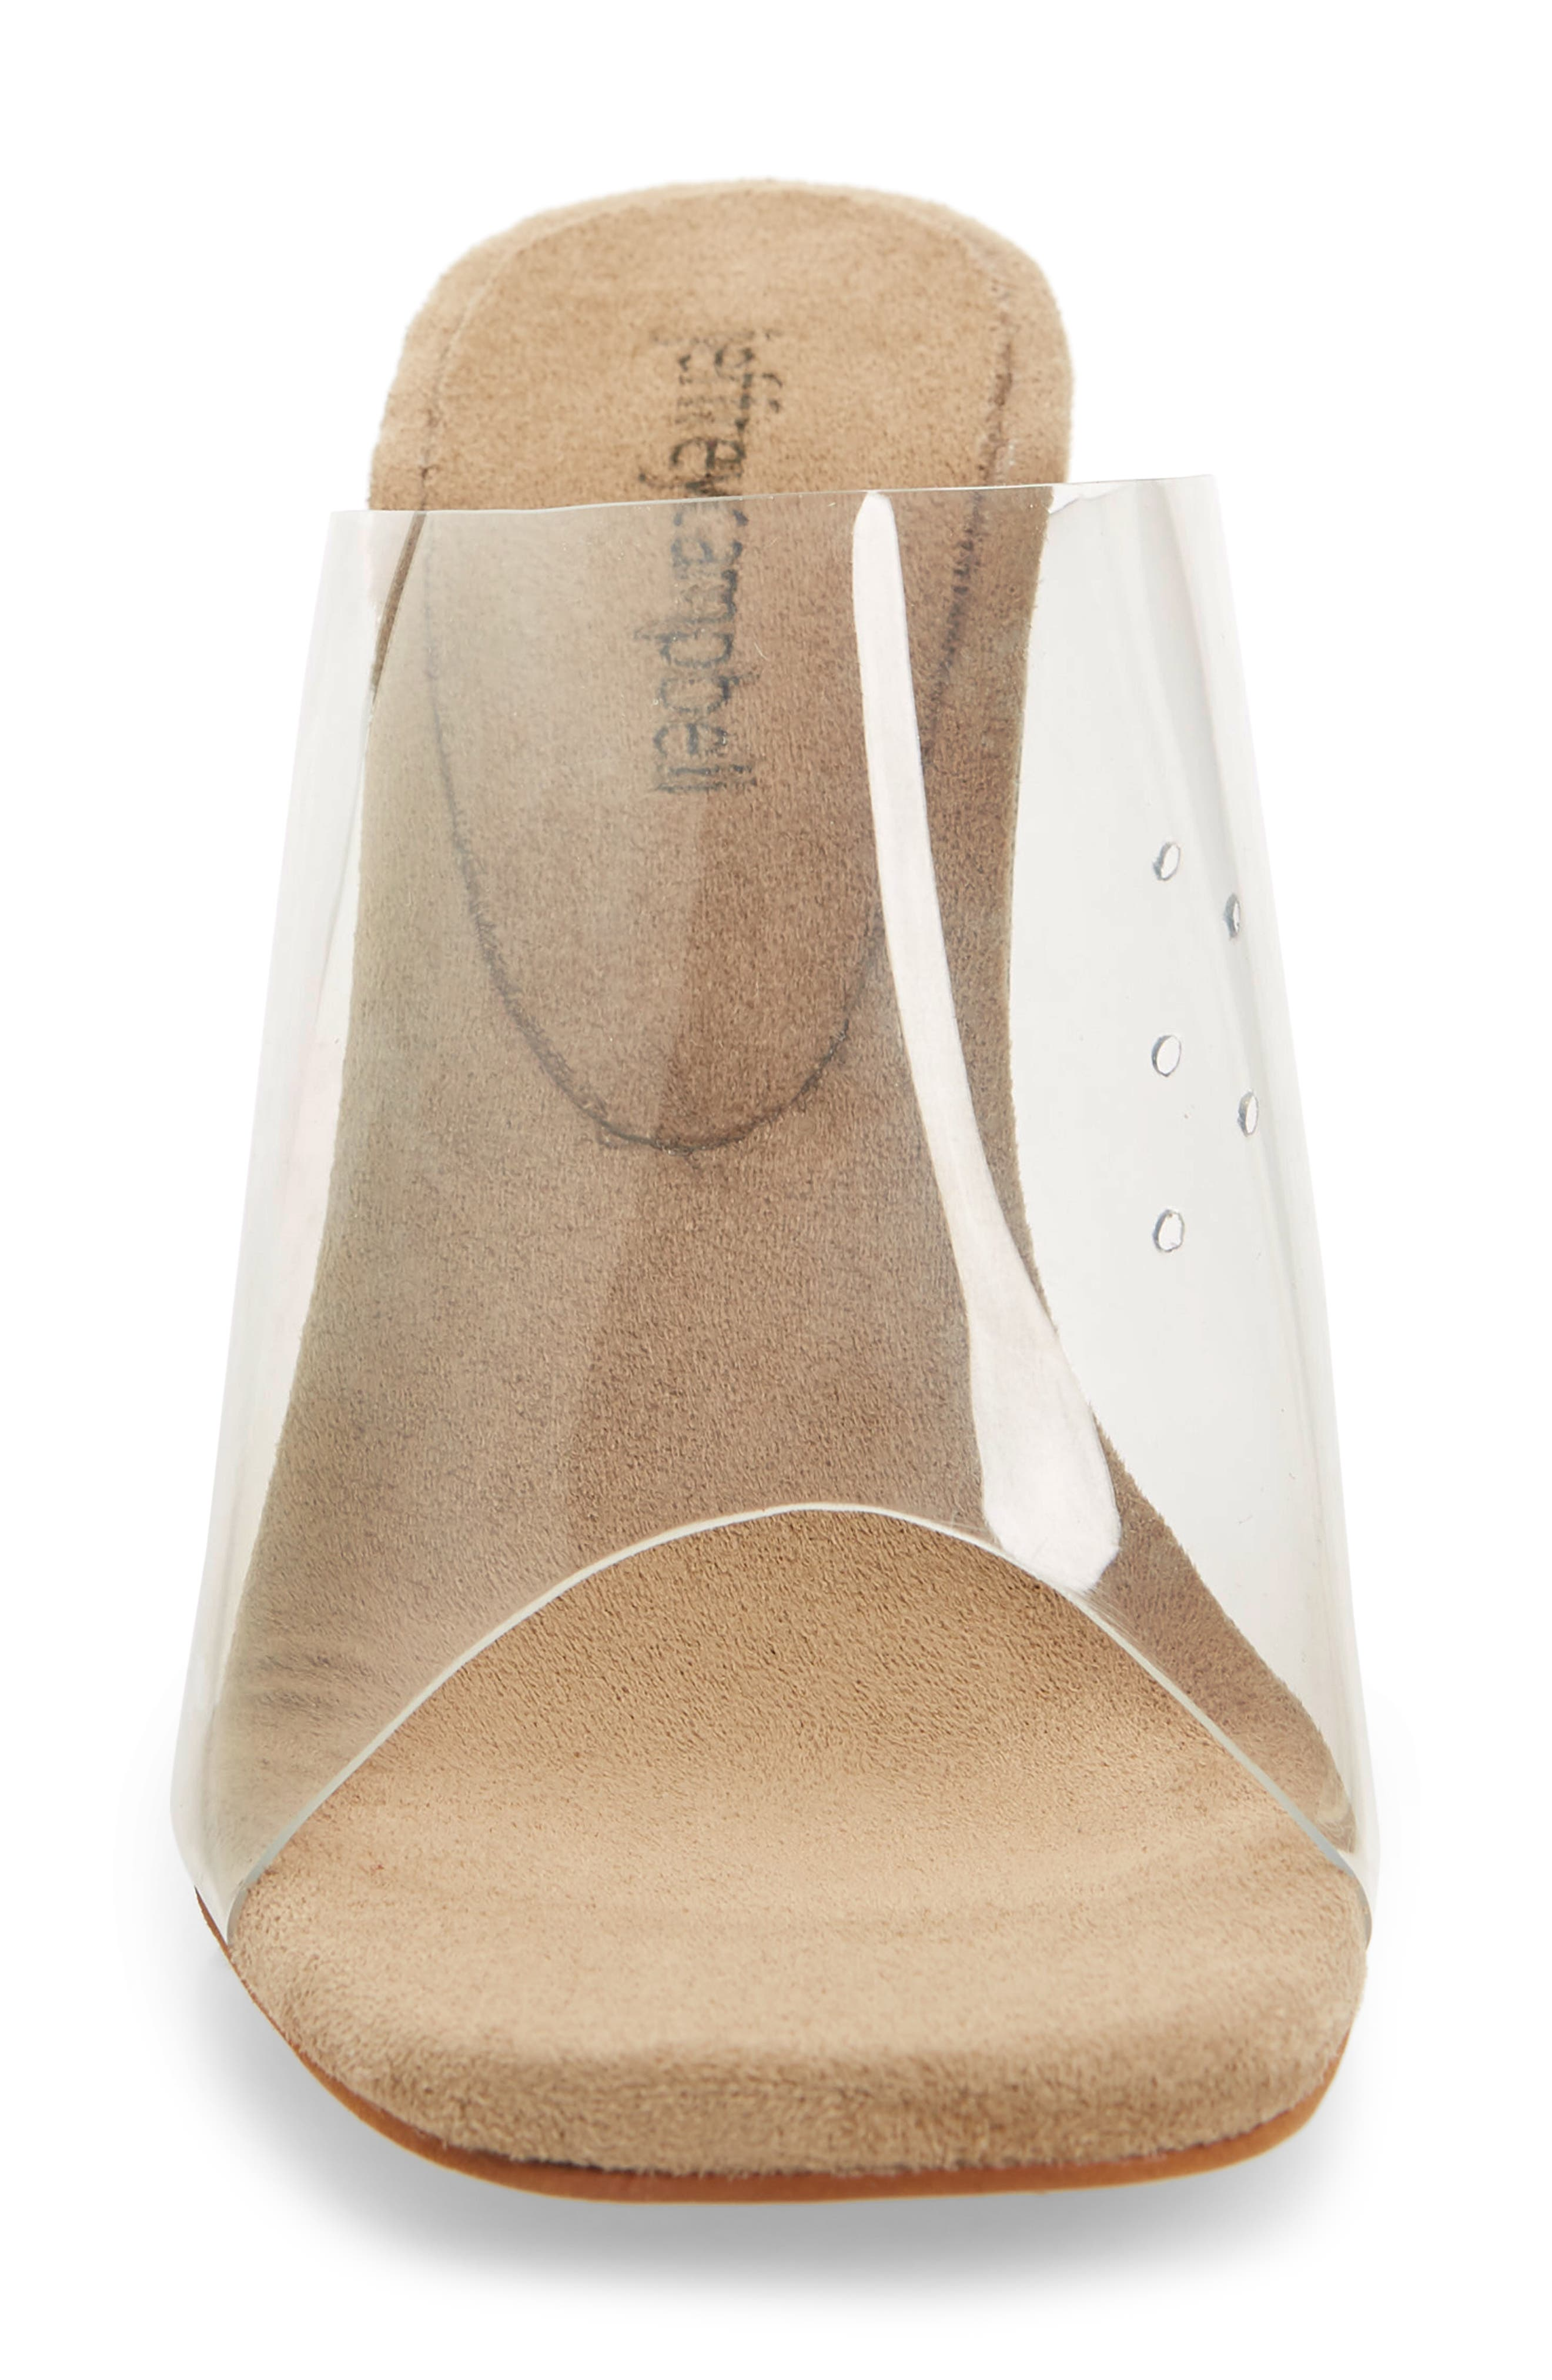 JEFFREY CAMPBELL, Clear Wedge Mule, Alternate thumbnail 4, color, CLEAR FAUX LEATHER